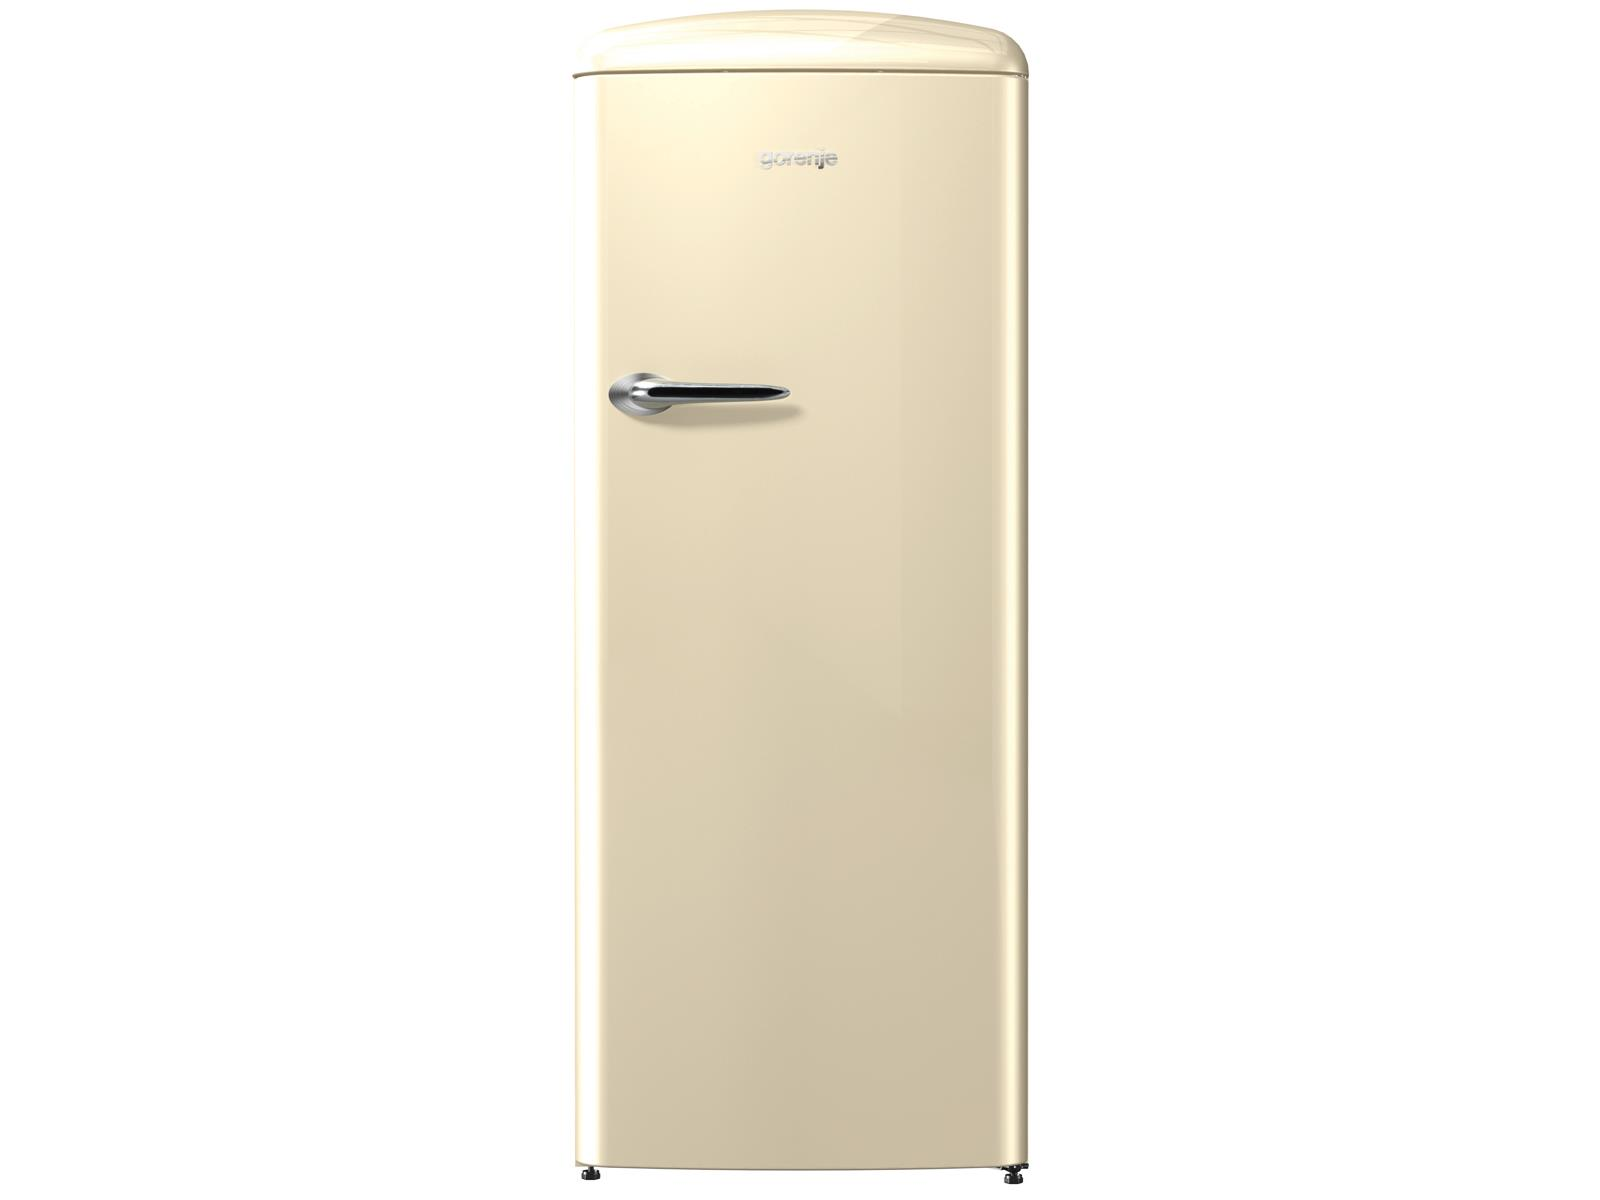 gorenje orb 153 c stand k hlschrank champagne beige standger t mit gefrierfach ebay. Black Bedroom Furniture Sets. Home Design Ideas